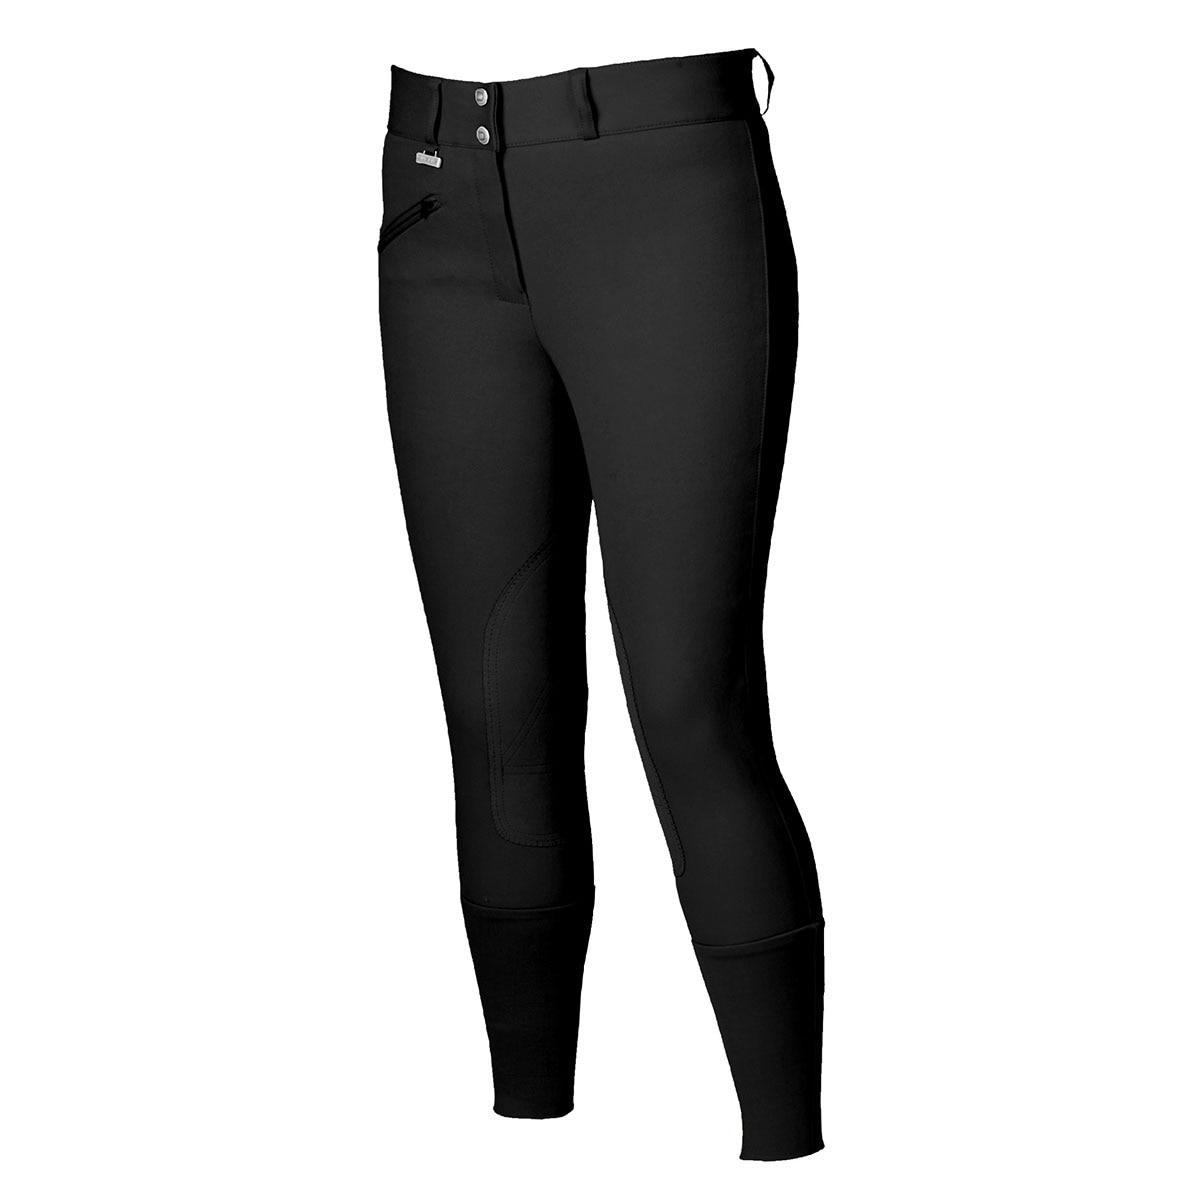 Dublin Everyday Signature Knee Patch Breeches